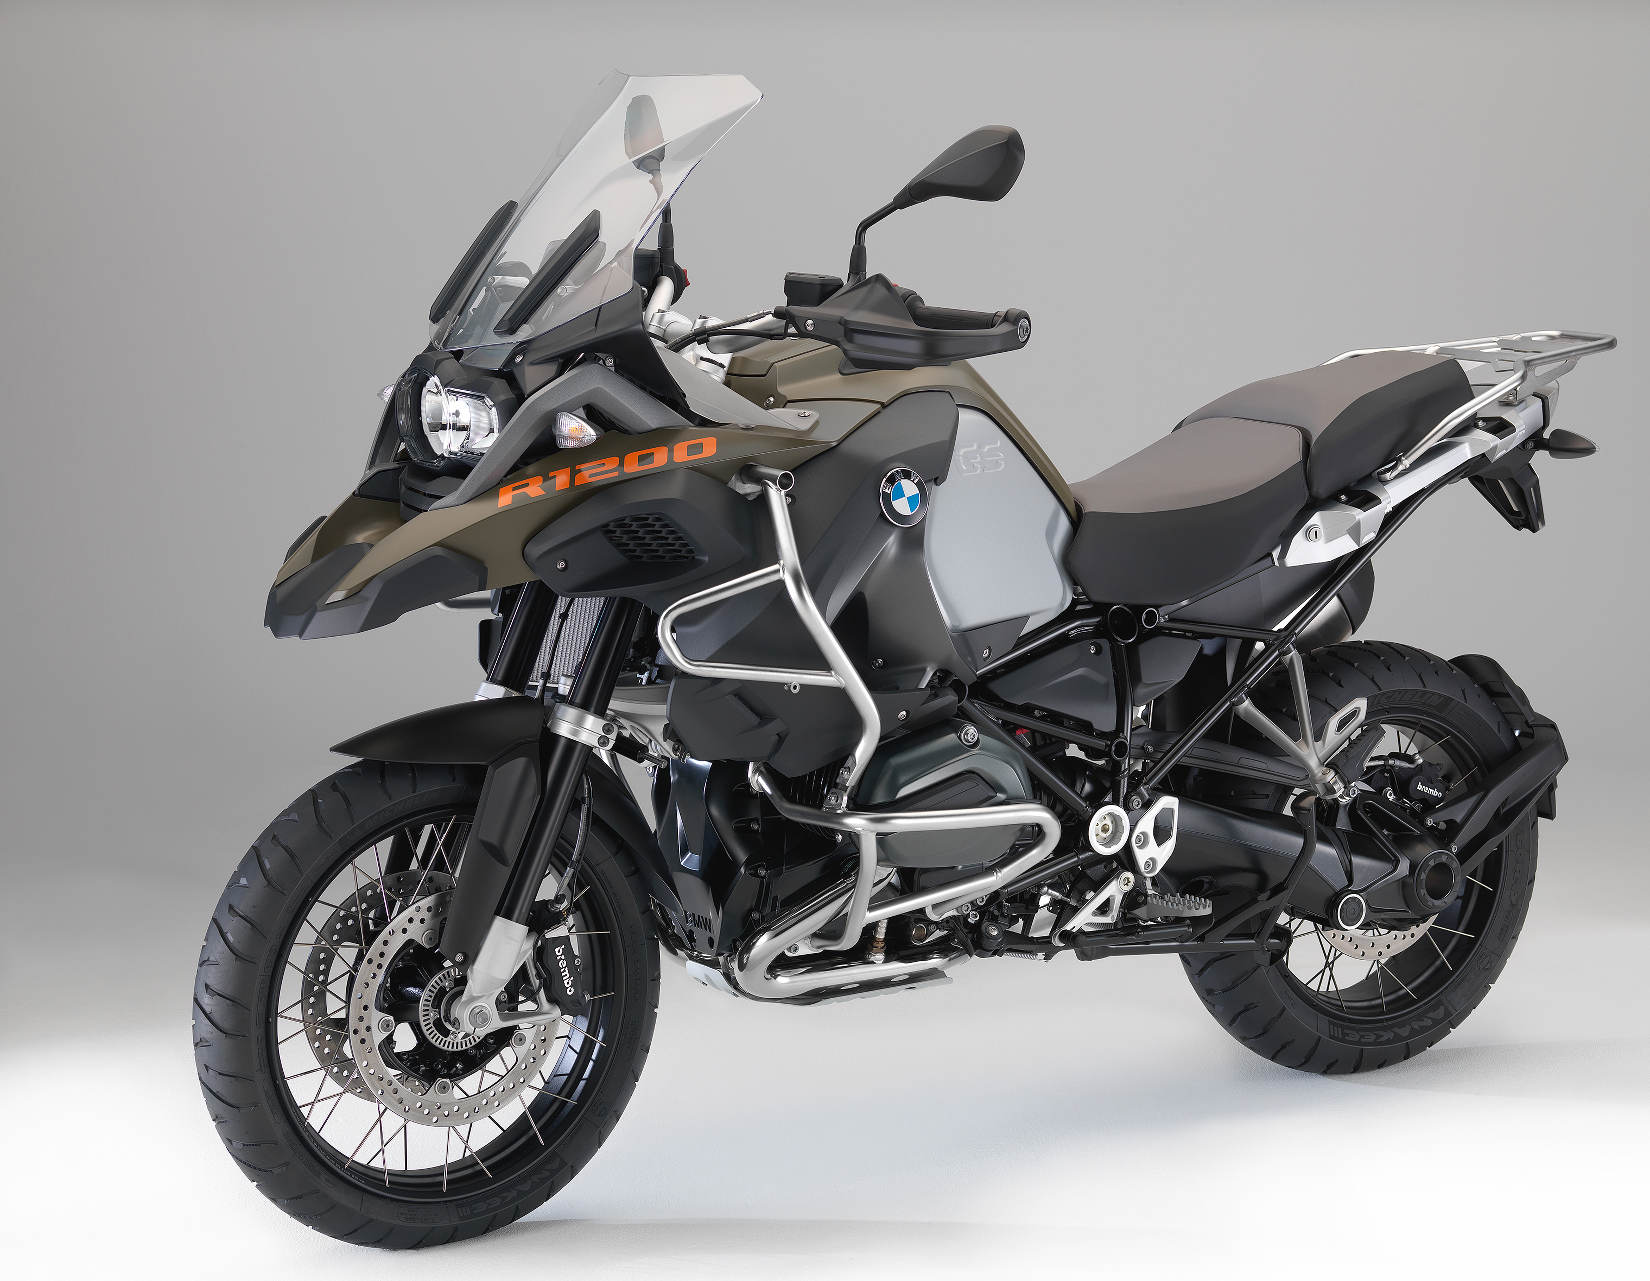 BMW R1200GS images #8007